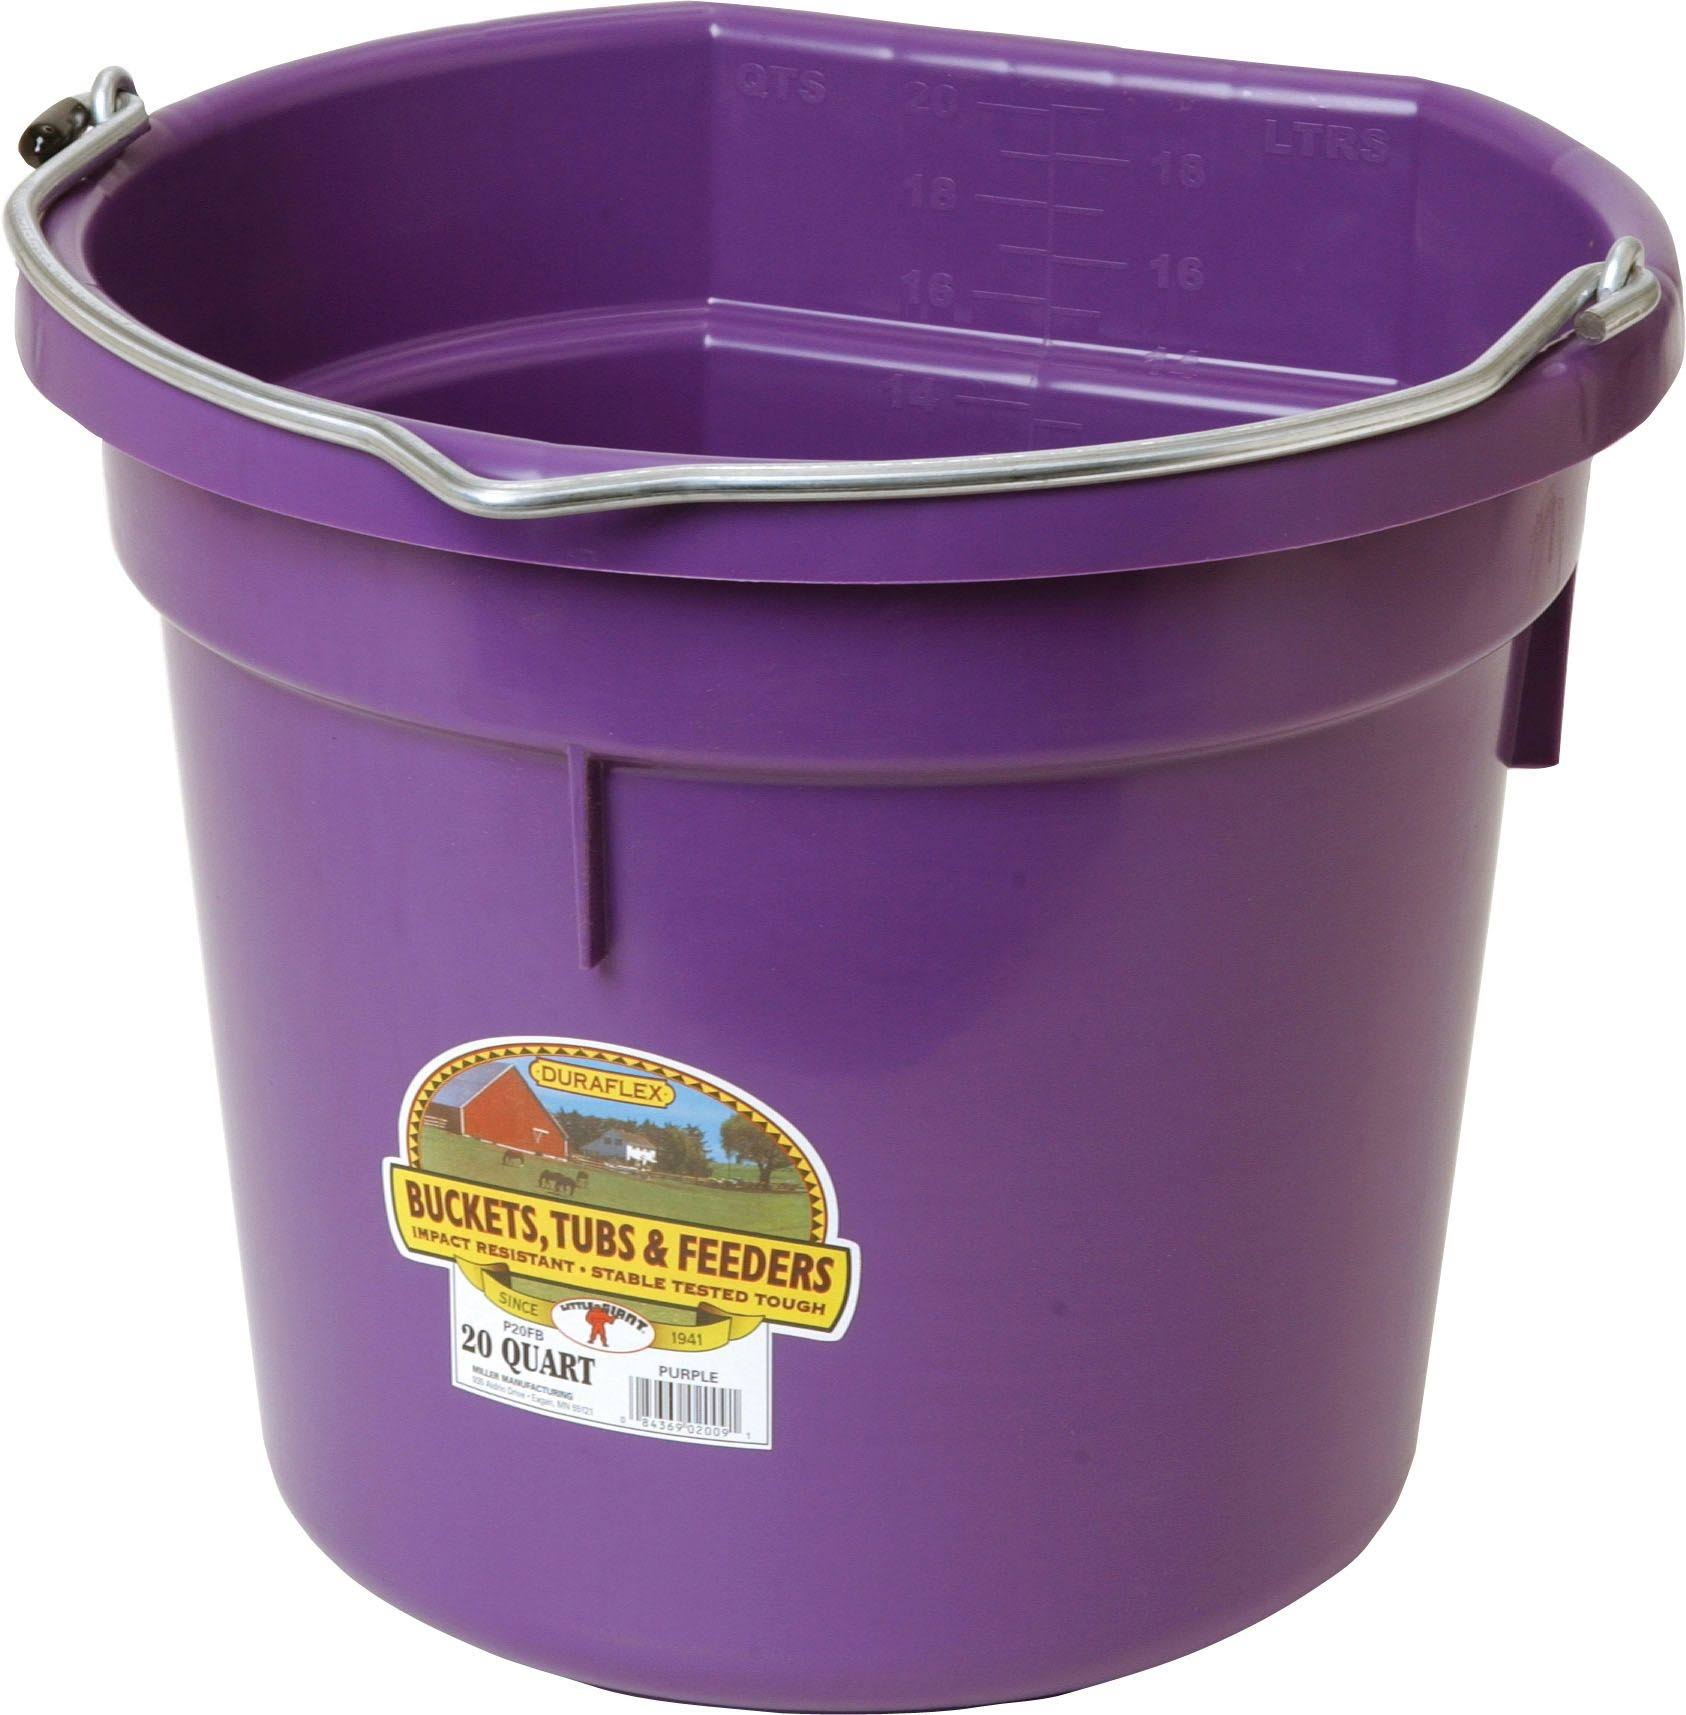 Little Giant DuraFlex Flat Back Plastic Bucket - 20 Quart